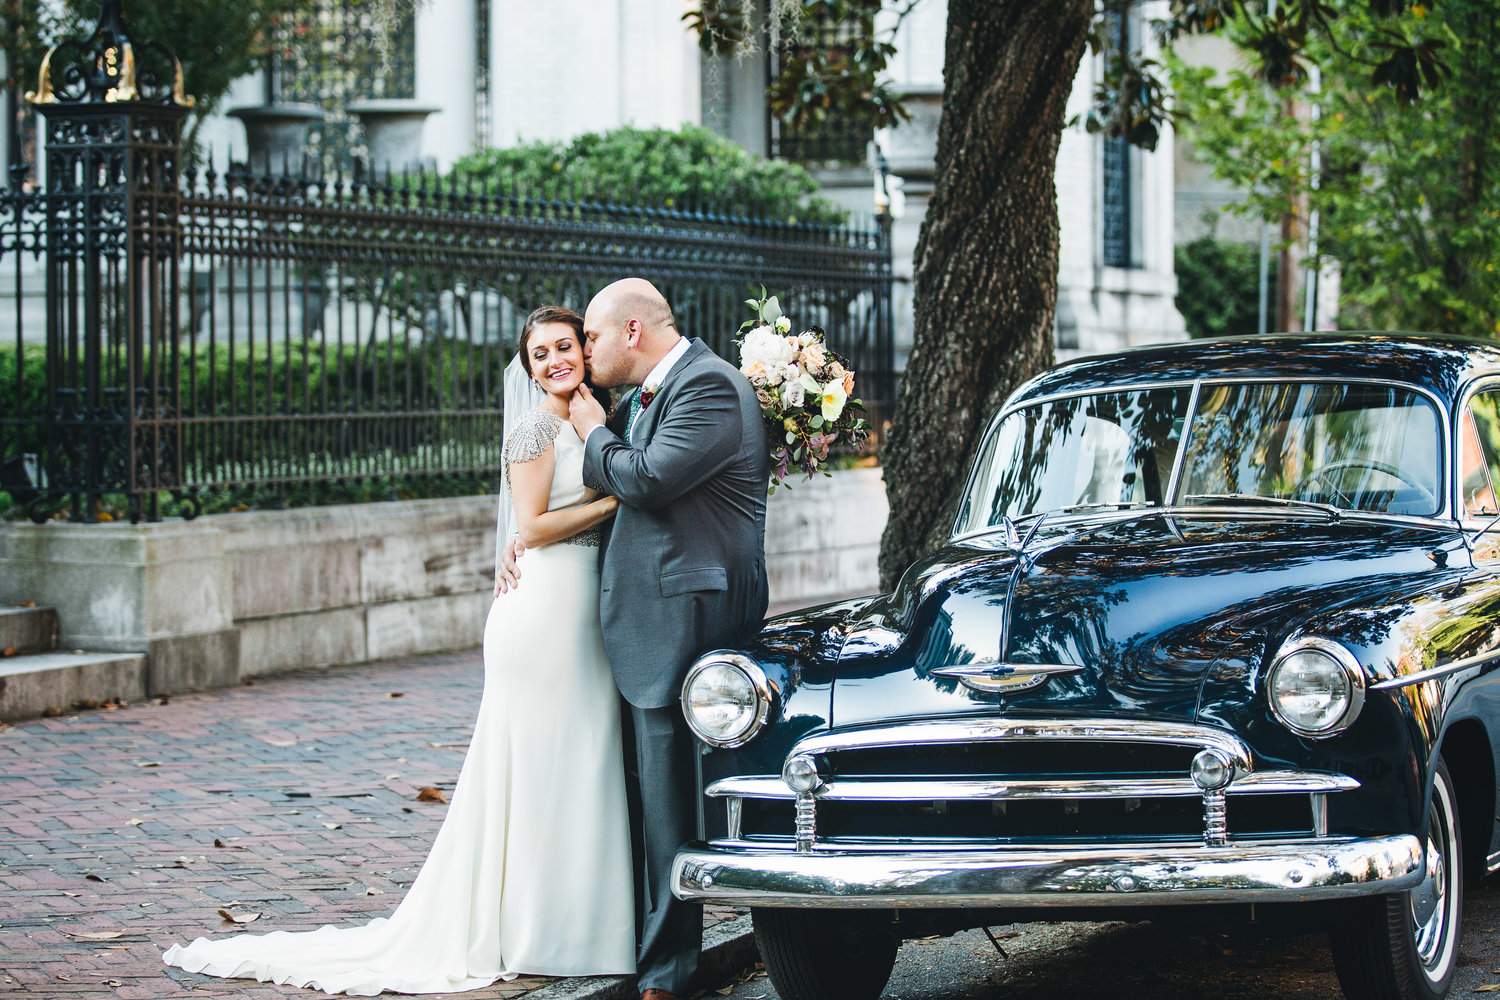 izzy-hudgins-photography-savannah-wedding-ivory-and-beau-bridal-boutique-savannah-wedding-planner-colonial-house-of-flowers-forsyth-park-wedding-old-fort-jackson-wedding-squidwed-films-savannah-boutique-savannah-weddings-38.jpg